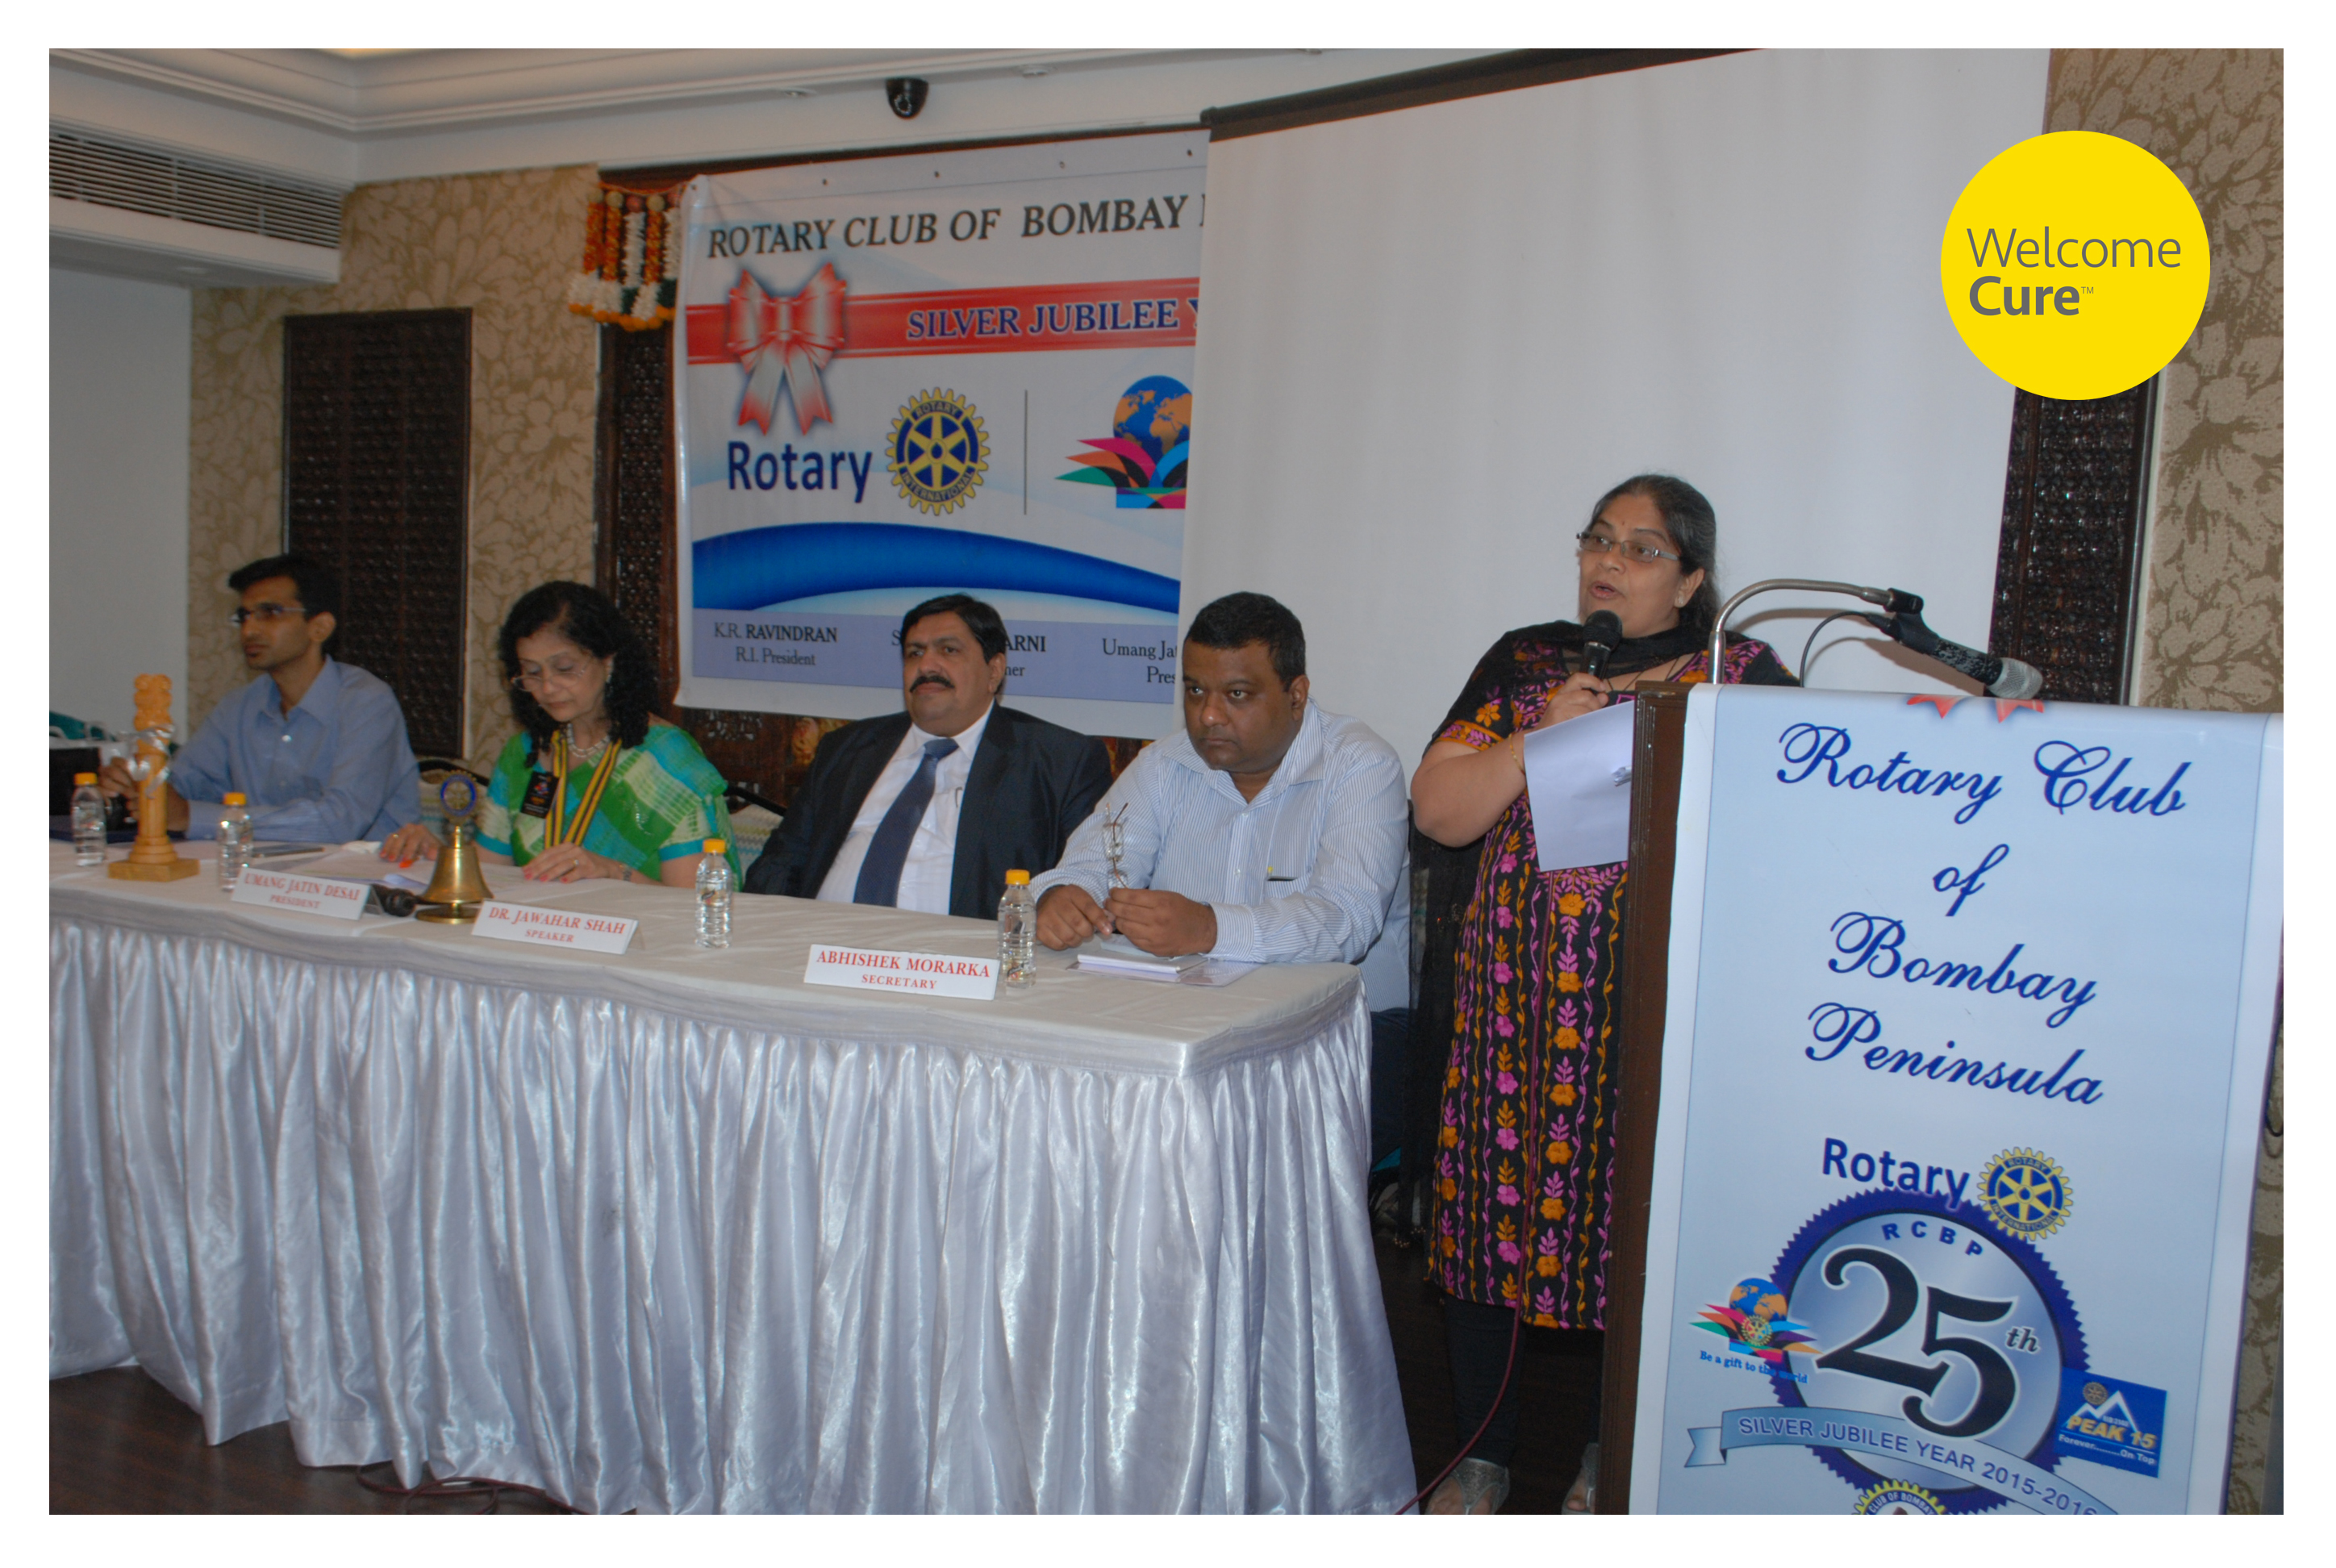 Rotary club event Image3